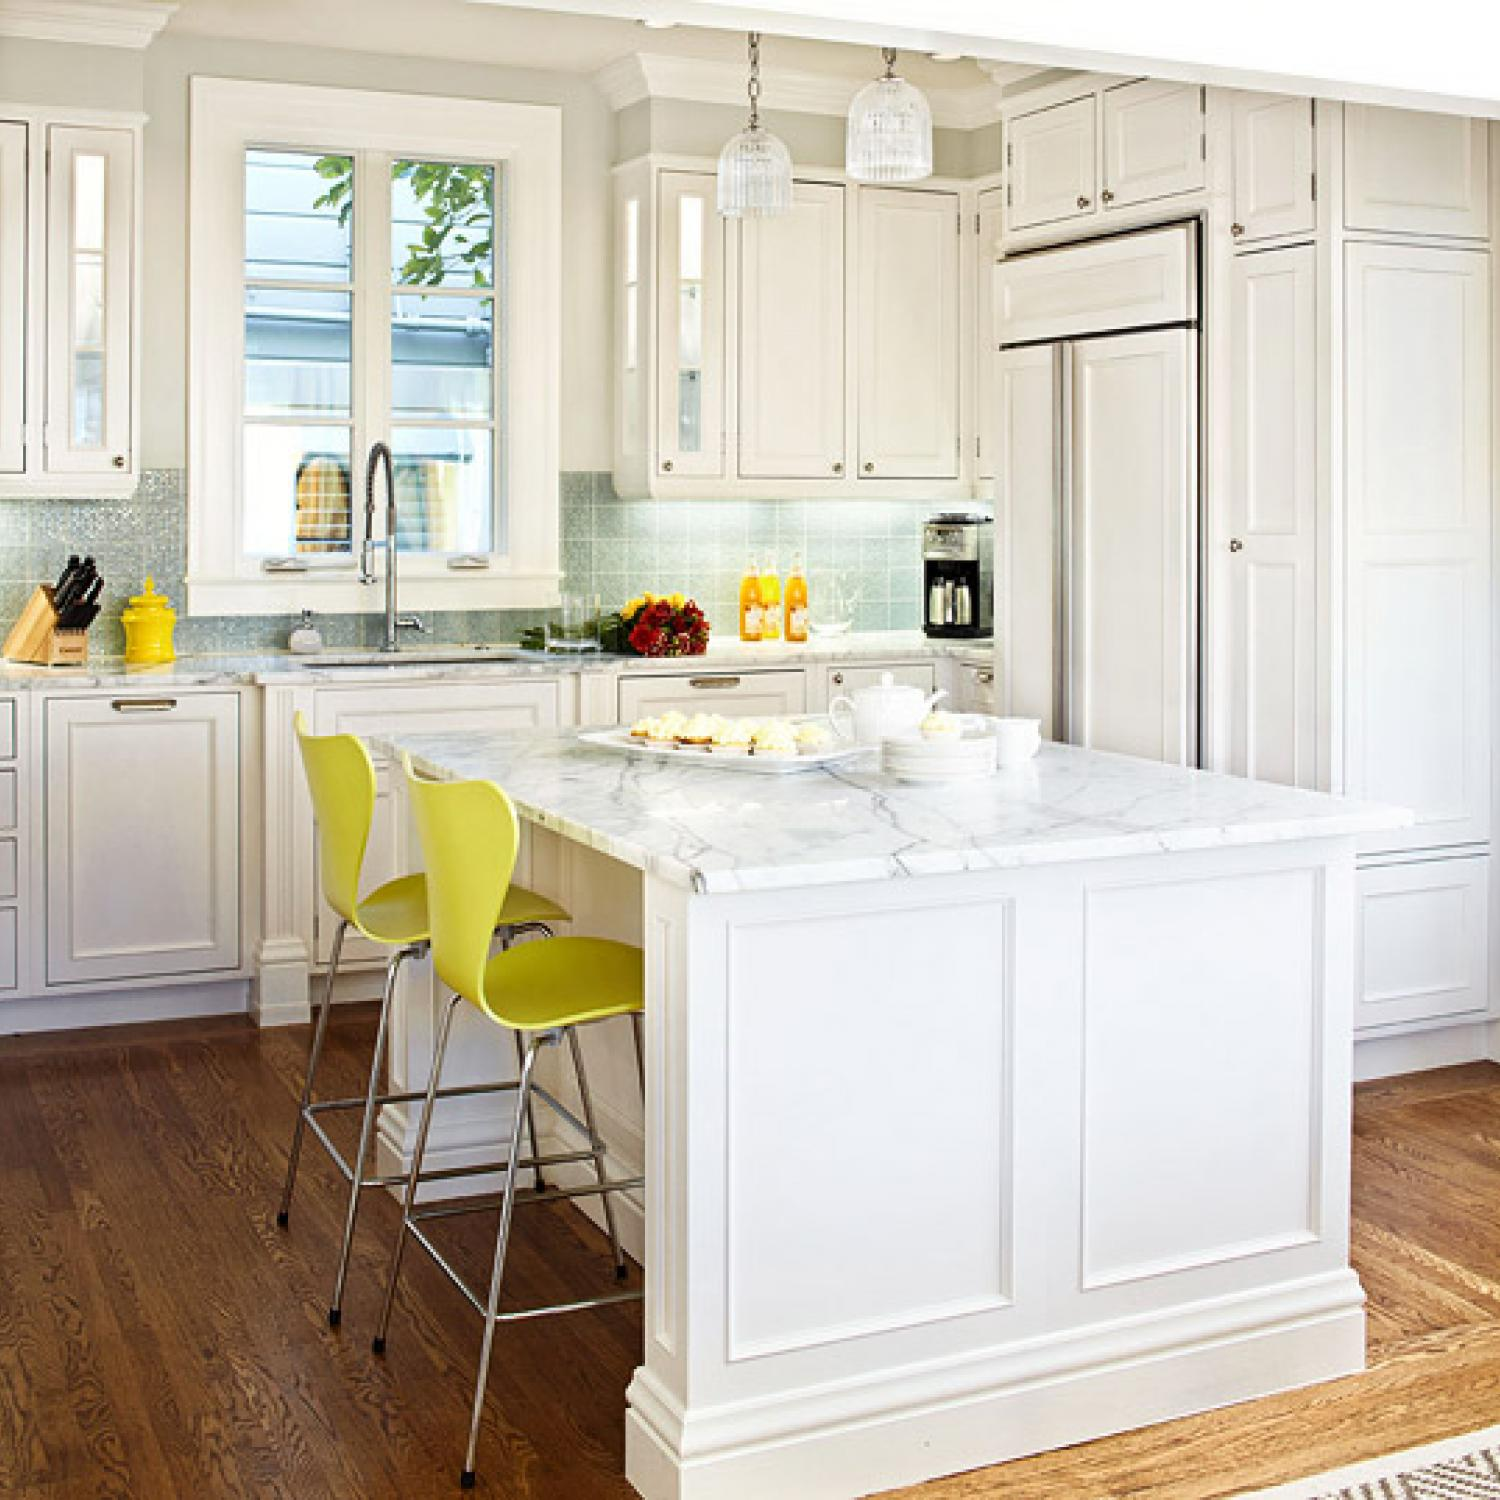 Design ideas for white kitchens traditional home for House design kitchen ideas